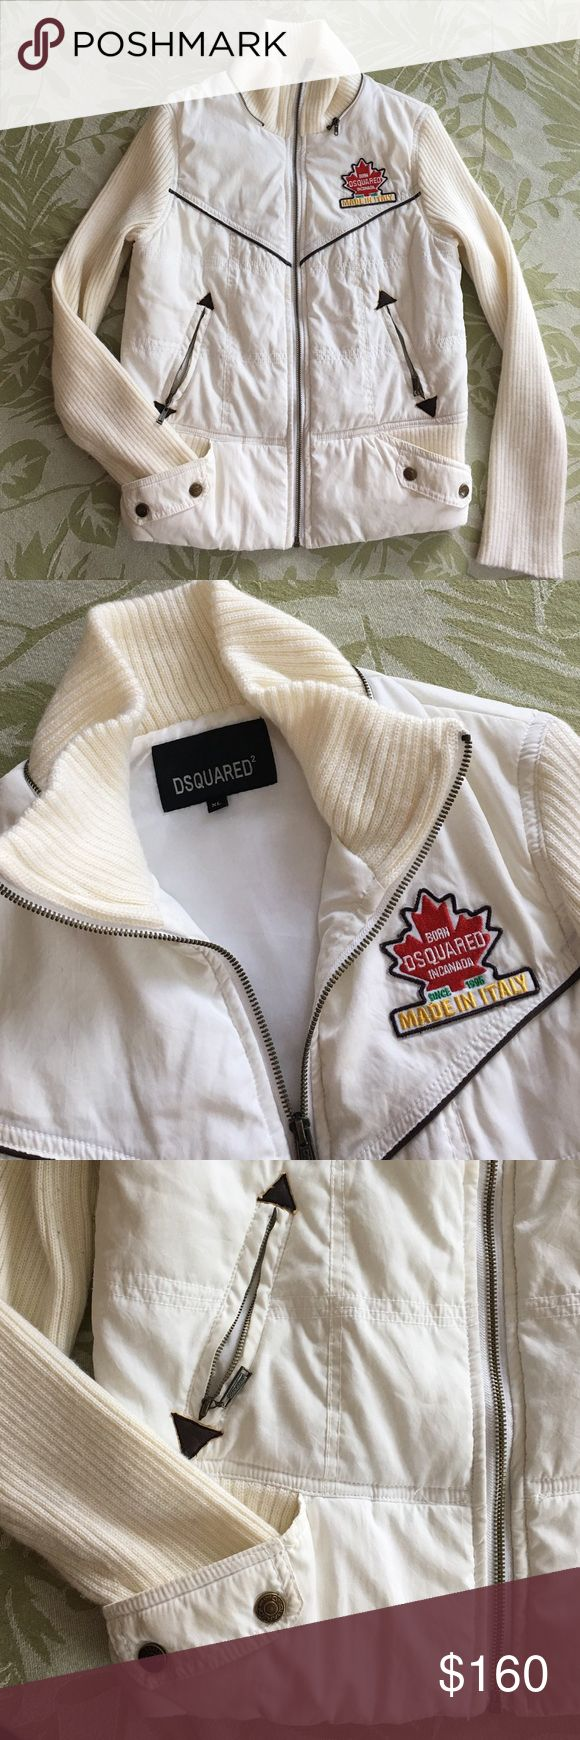 DSQUARED2 white zipper jacket made in Italy Medium Made in Italy. Tag says it's XL but it runs small. It's a size Medium. Leather accents, two exterior pockets. Just a great jacket! DSQUARED Jackets & Coats Puffers